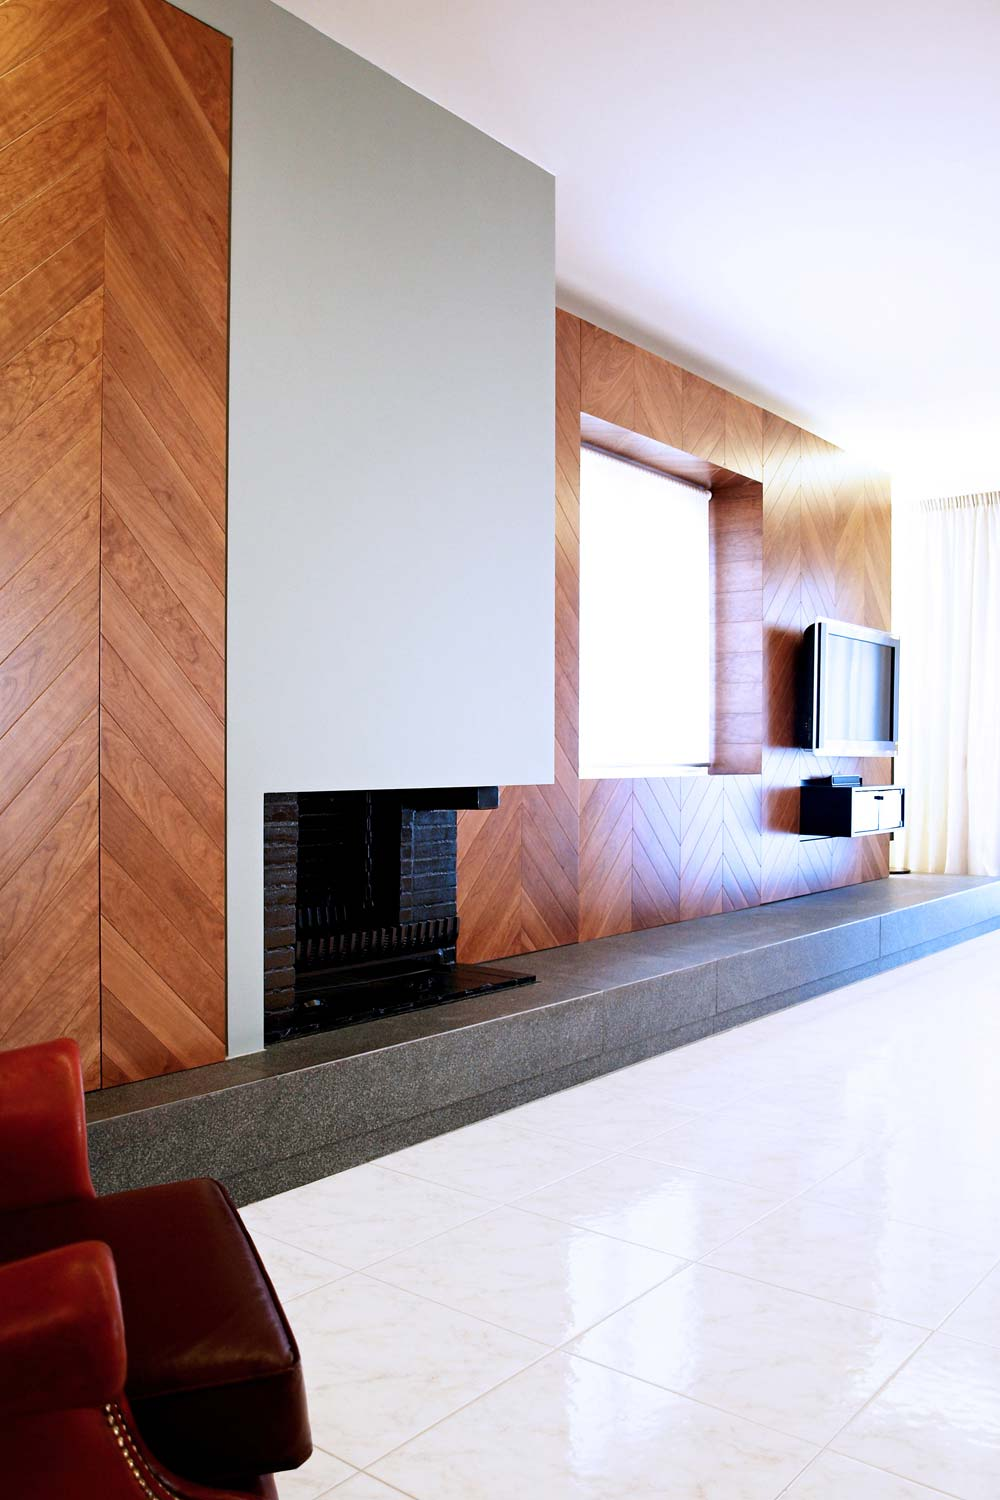 The shell of the existing fireplace was constructed and transformed.